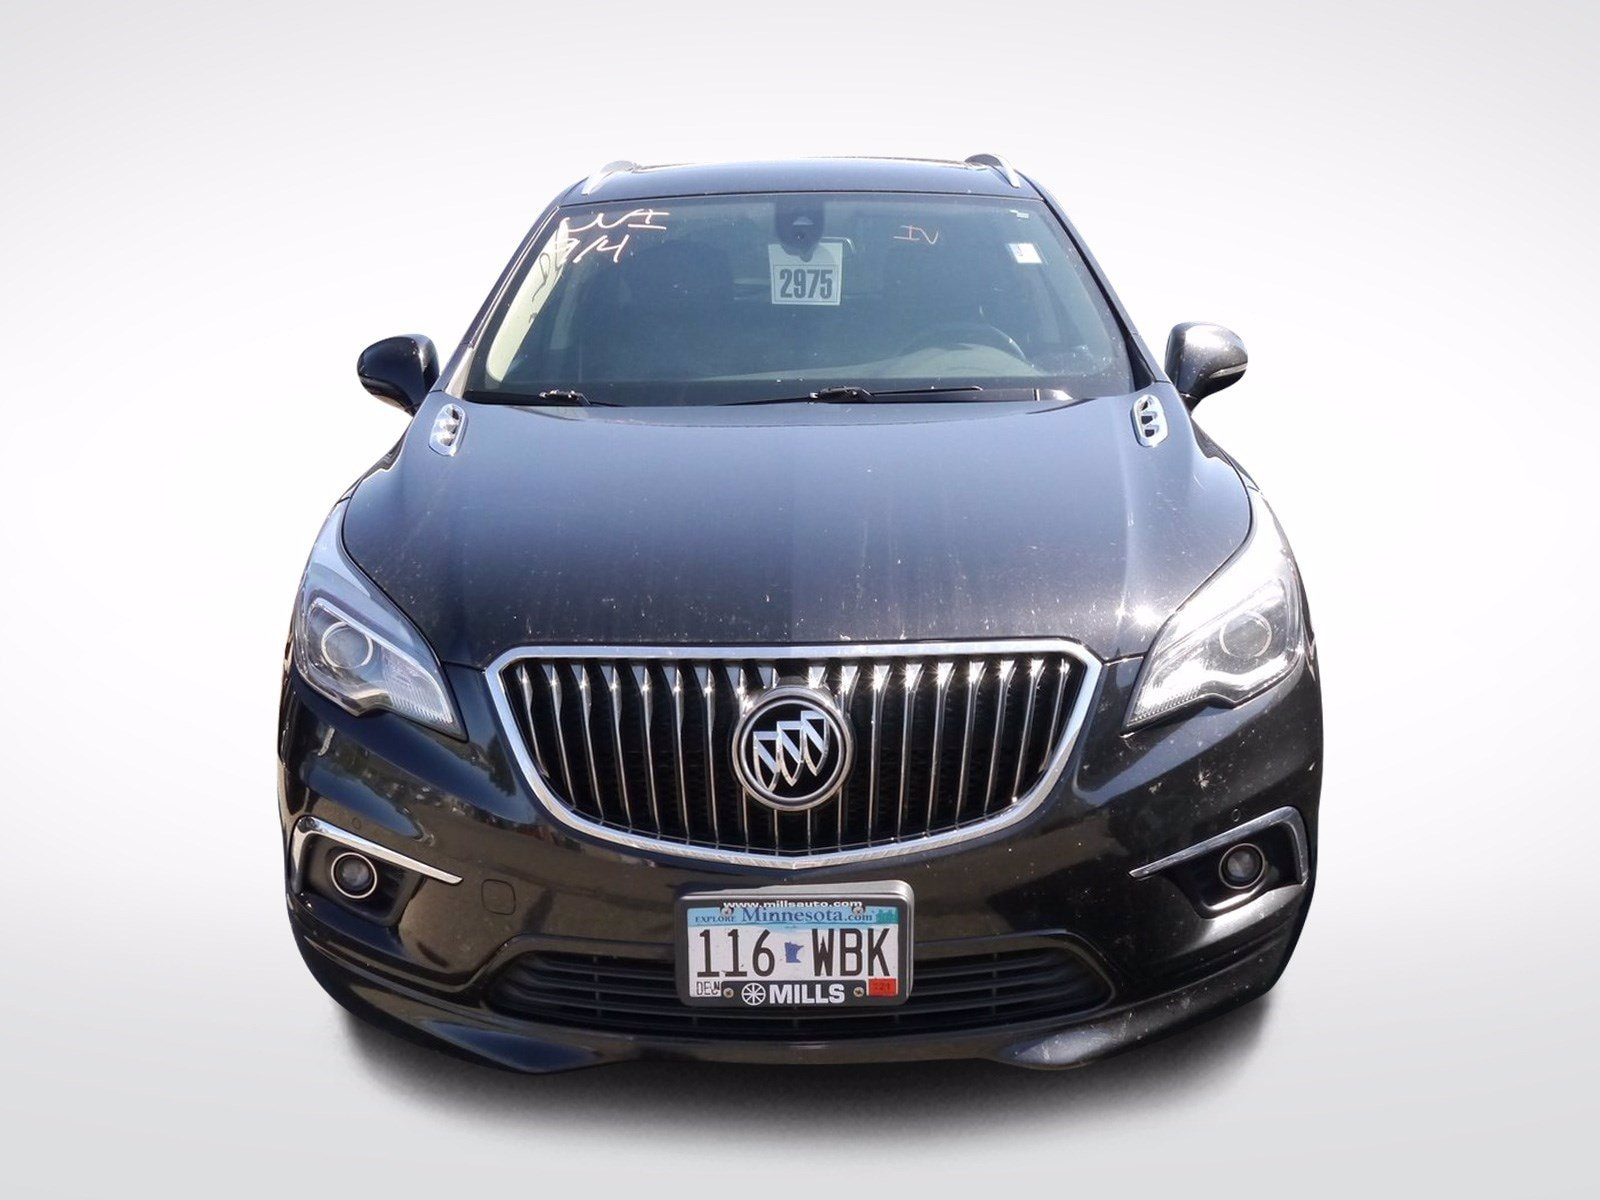 Used 2016 Buick Envision Premium I with VIN LRBFXESX9GD244423 for sale in Baxter, Minnesota